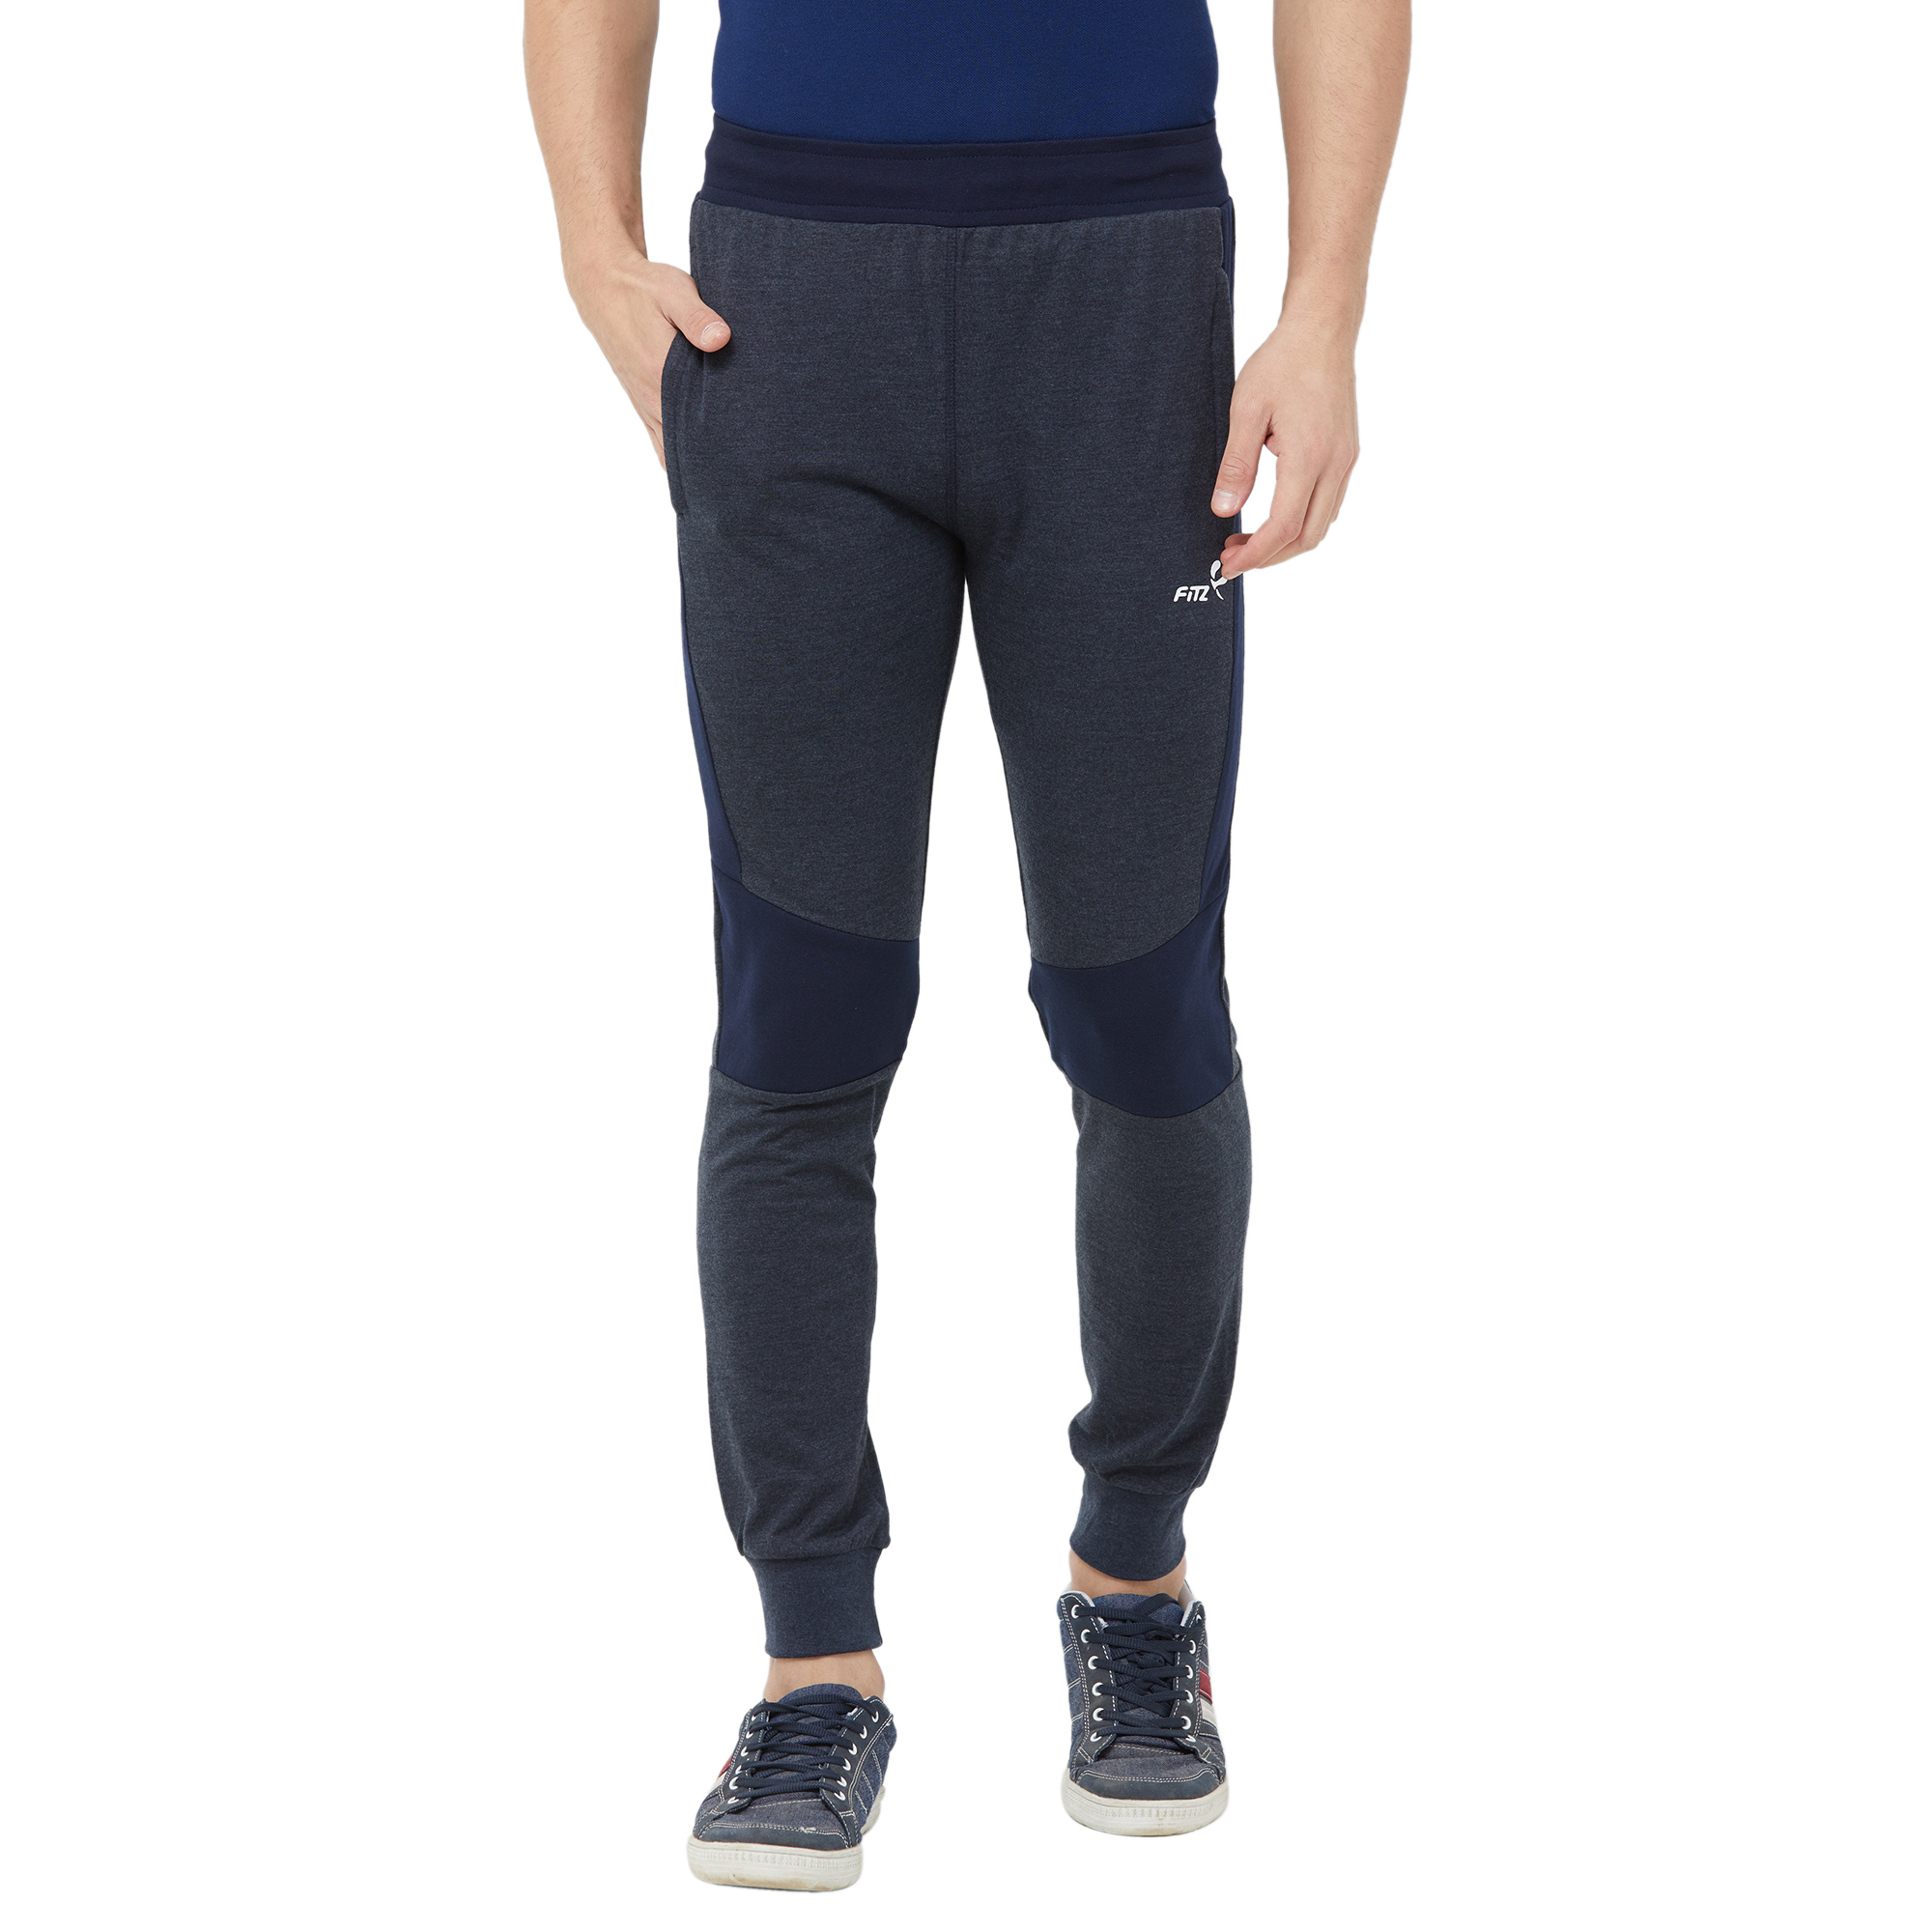 FITZ   Fitz  Cotton Grey Loungewear Joggers Track For Mens